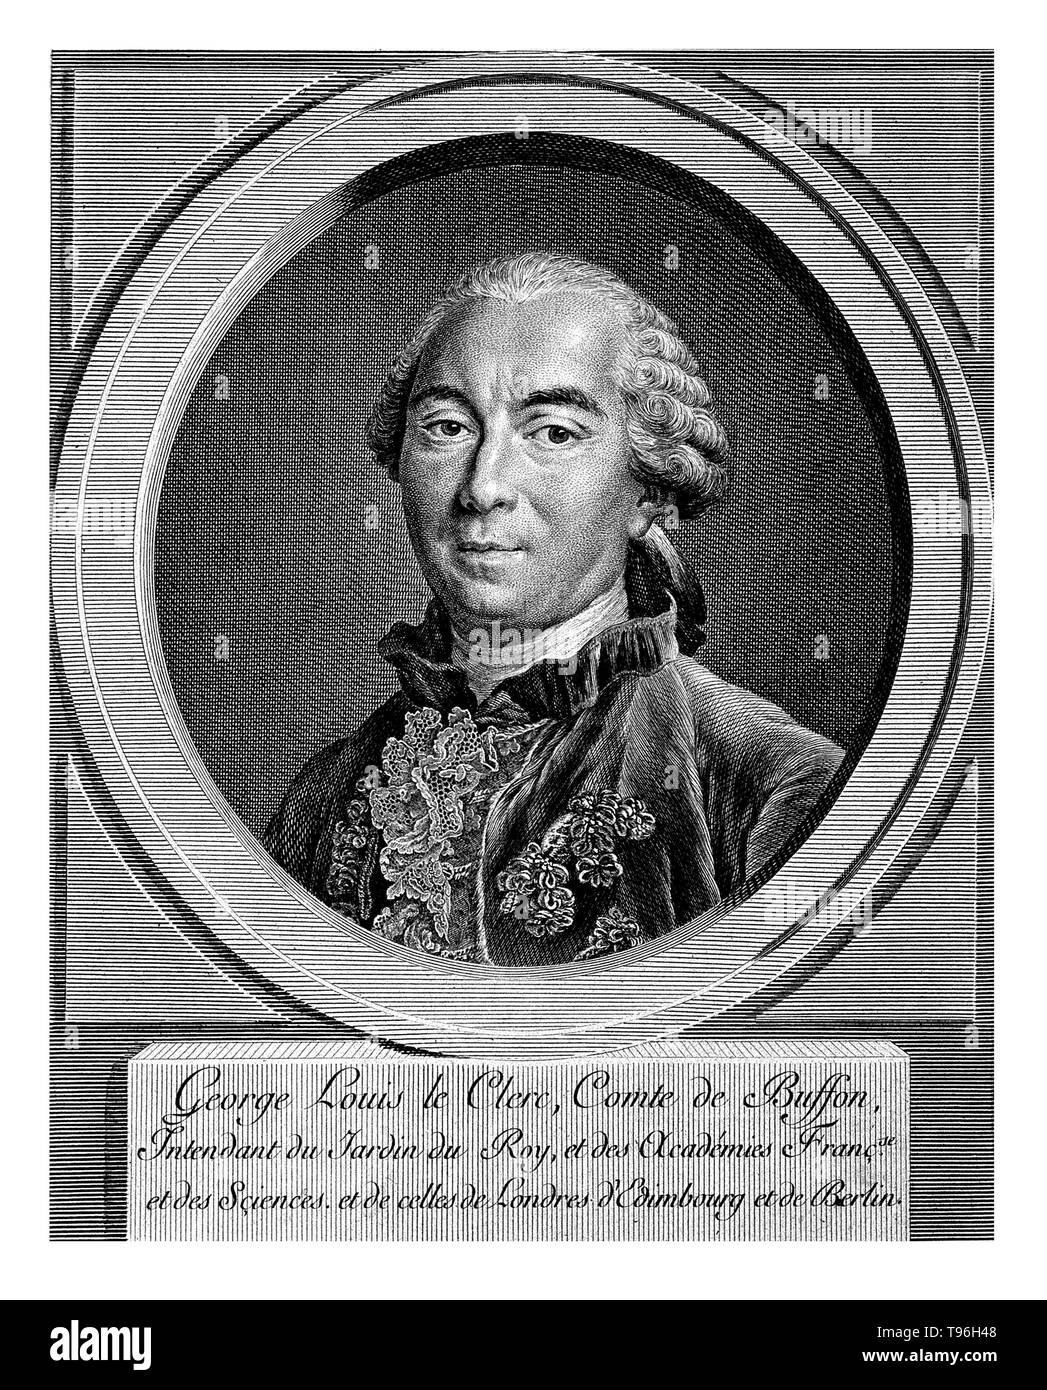 Georges Louis Leclerc, Comte de Buffon (September 7, 1707 - April 16, 1788) was a French naturalist, mathematician, cosmologist, and encyclopedic author. He epitomizes the revolutionary changes that the Enlightenment brought to the study of nature. 100 years before Darwin, Buffon published his Historie Naturelle (Natural History), a 44 volume encyclopedia describing everything known about the natural world, he wrestled with the similarities of humans and apes and even talked about common ancestry of Man and apes, but ultimately rejected the possibility of a common descent. His works influenced - Stock Image